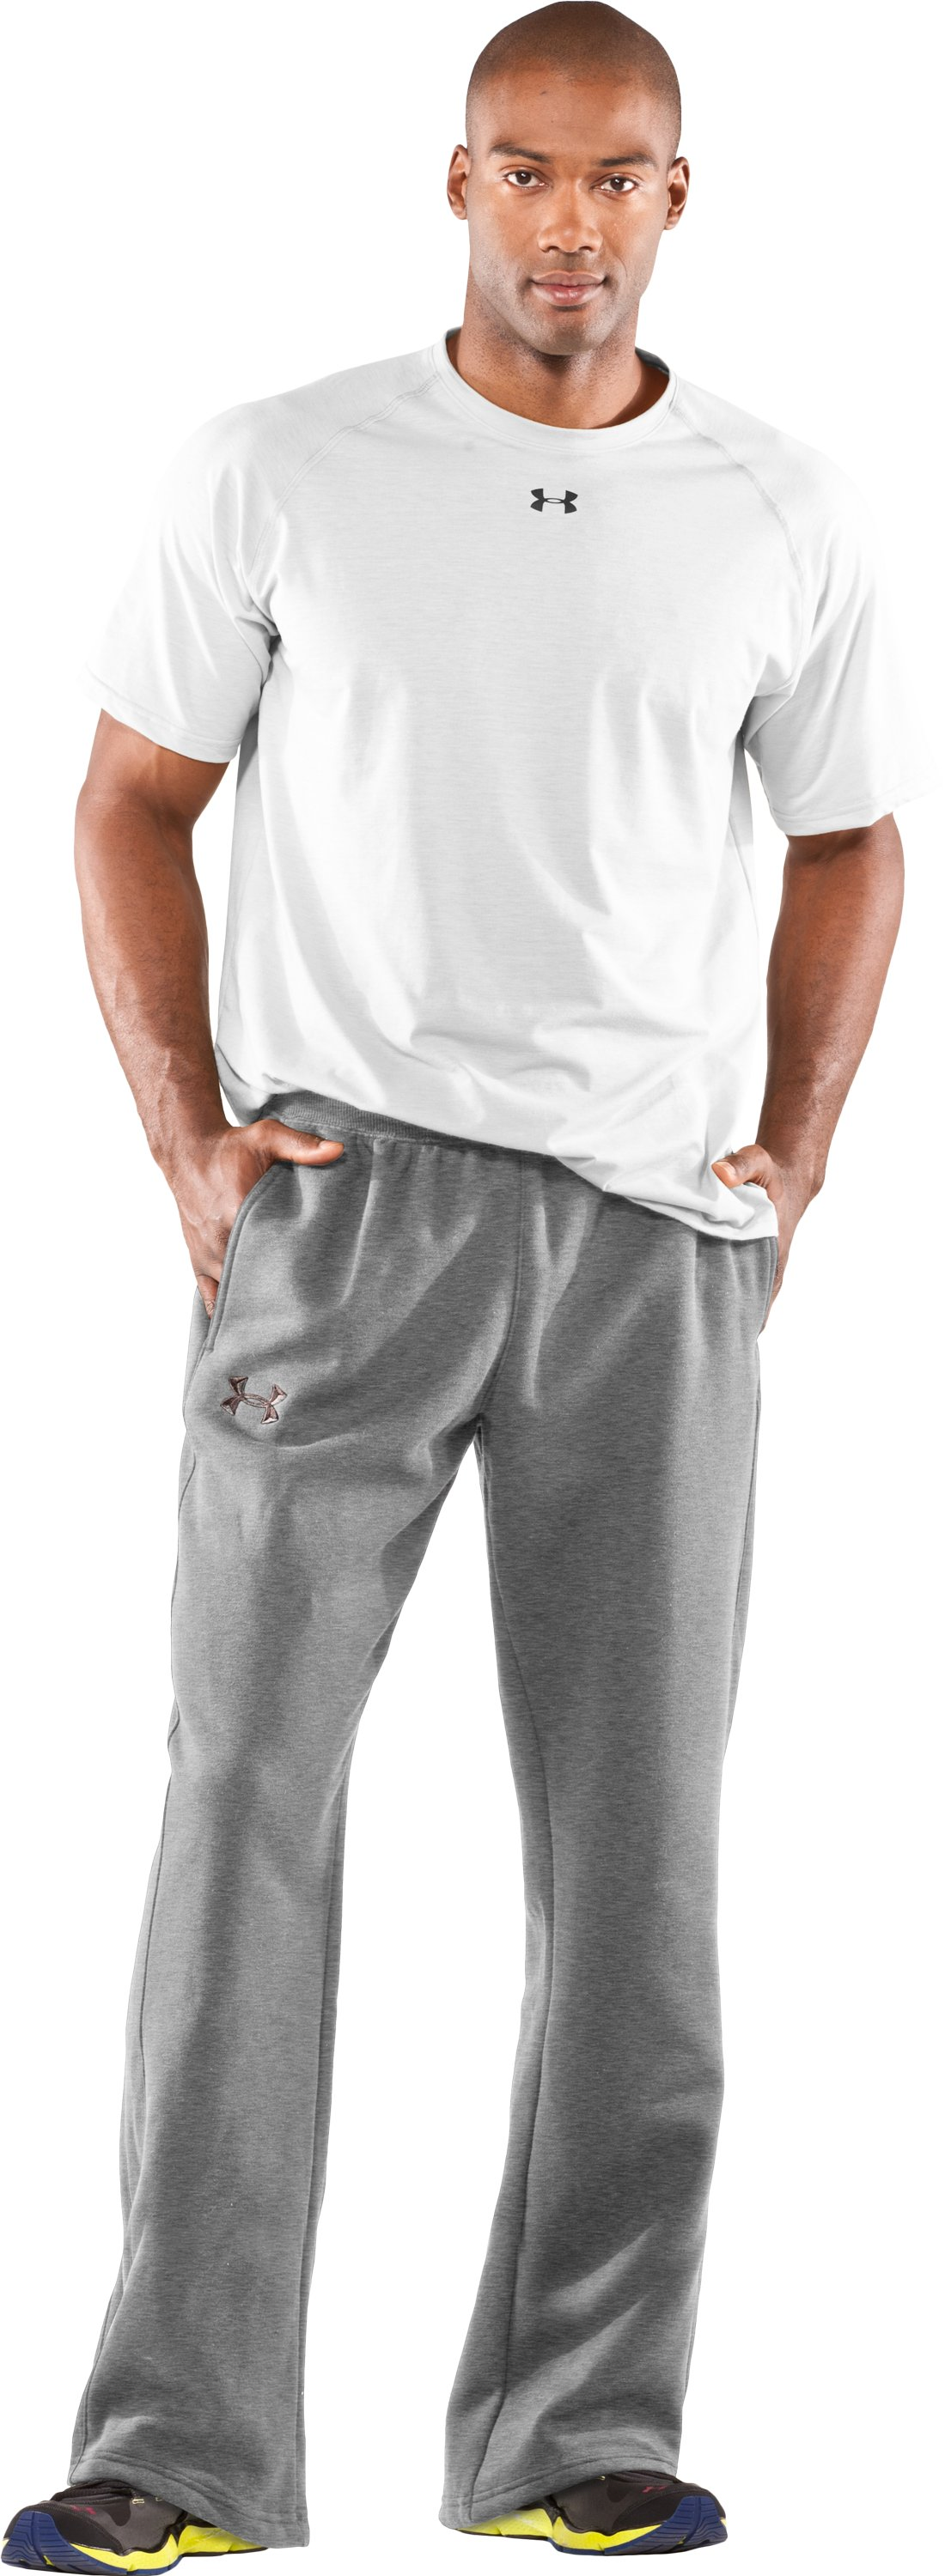 Men's Team Charged Cotton® Storm Pants, True Gray Heather, zoomed image